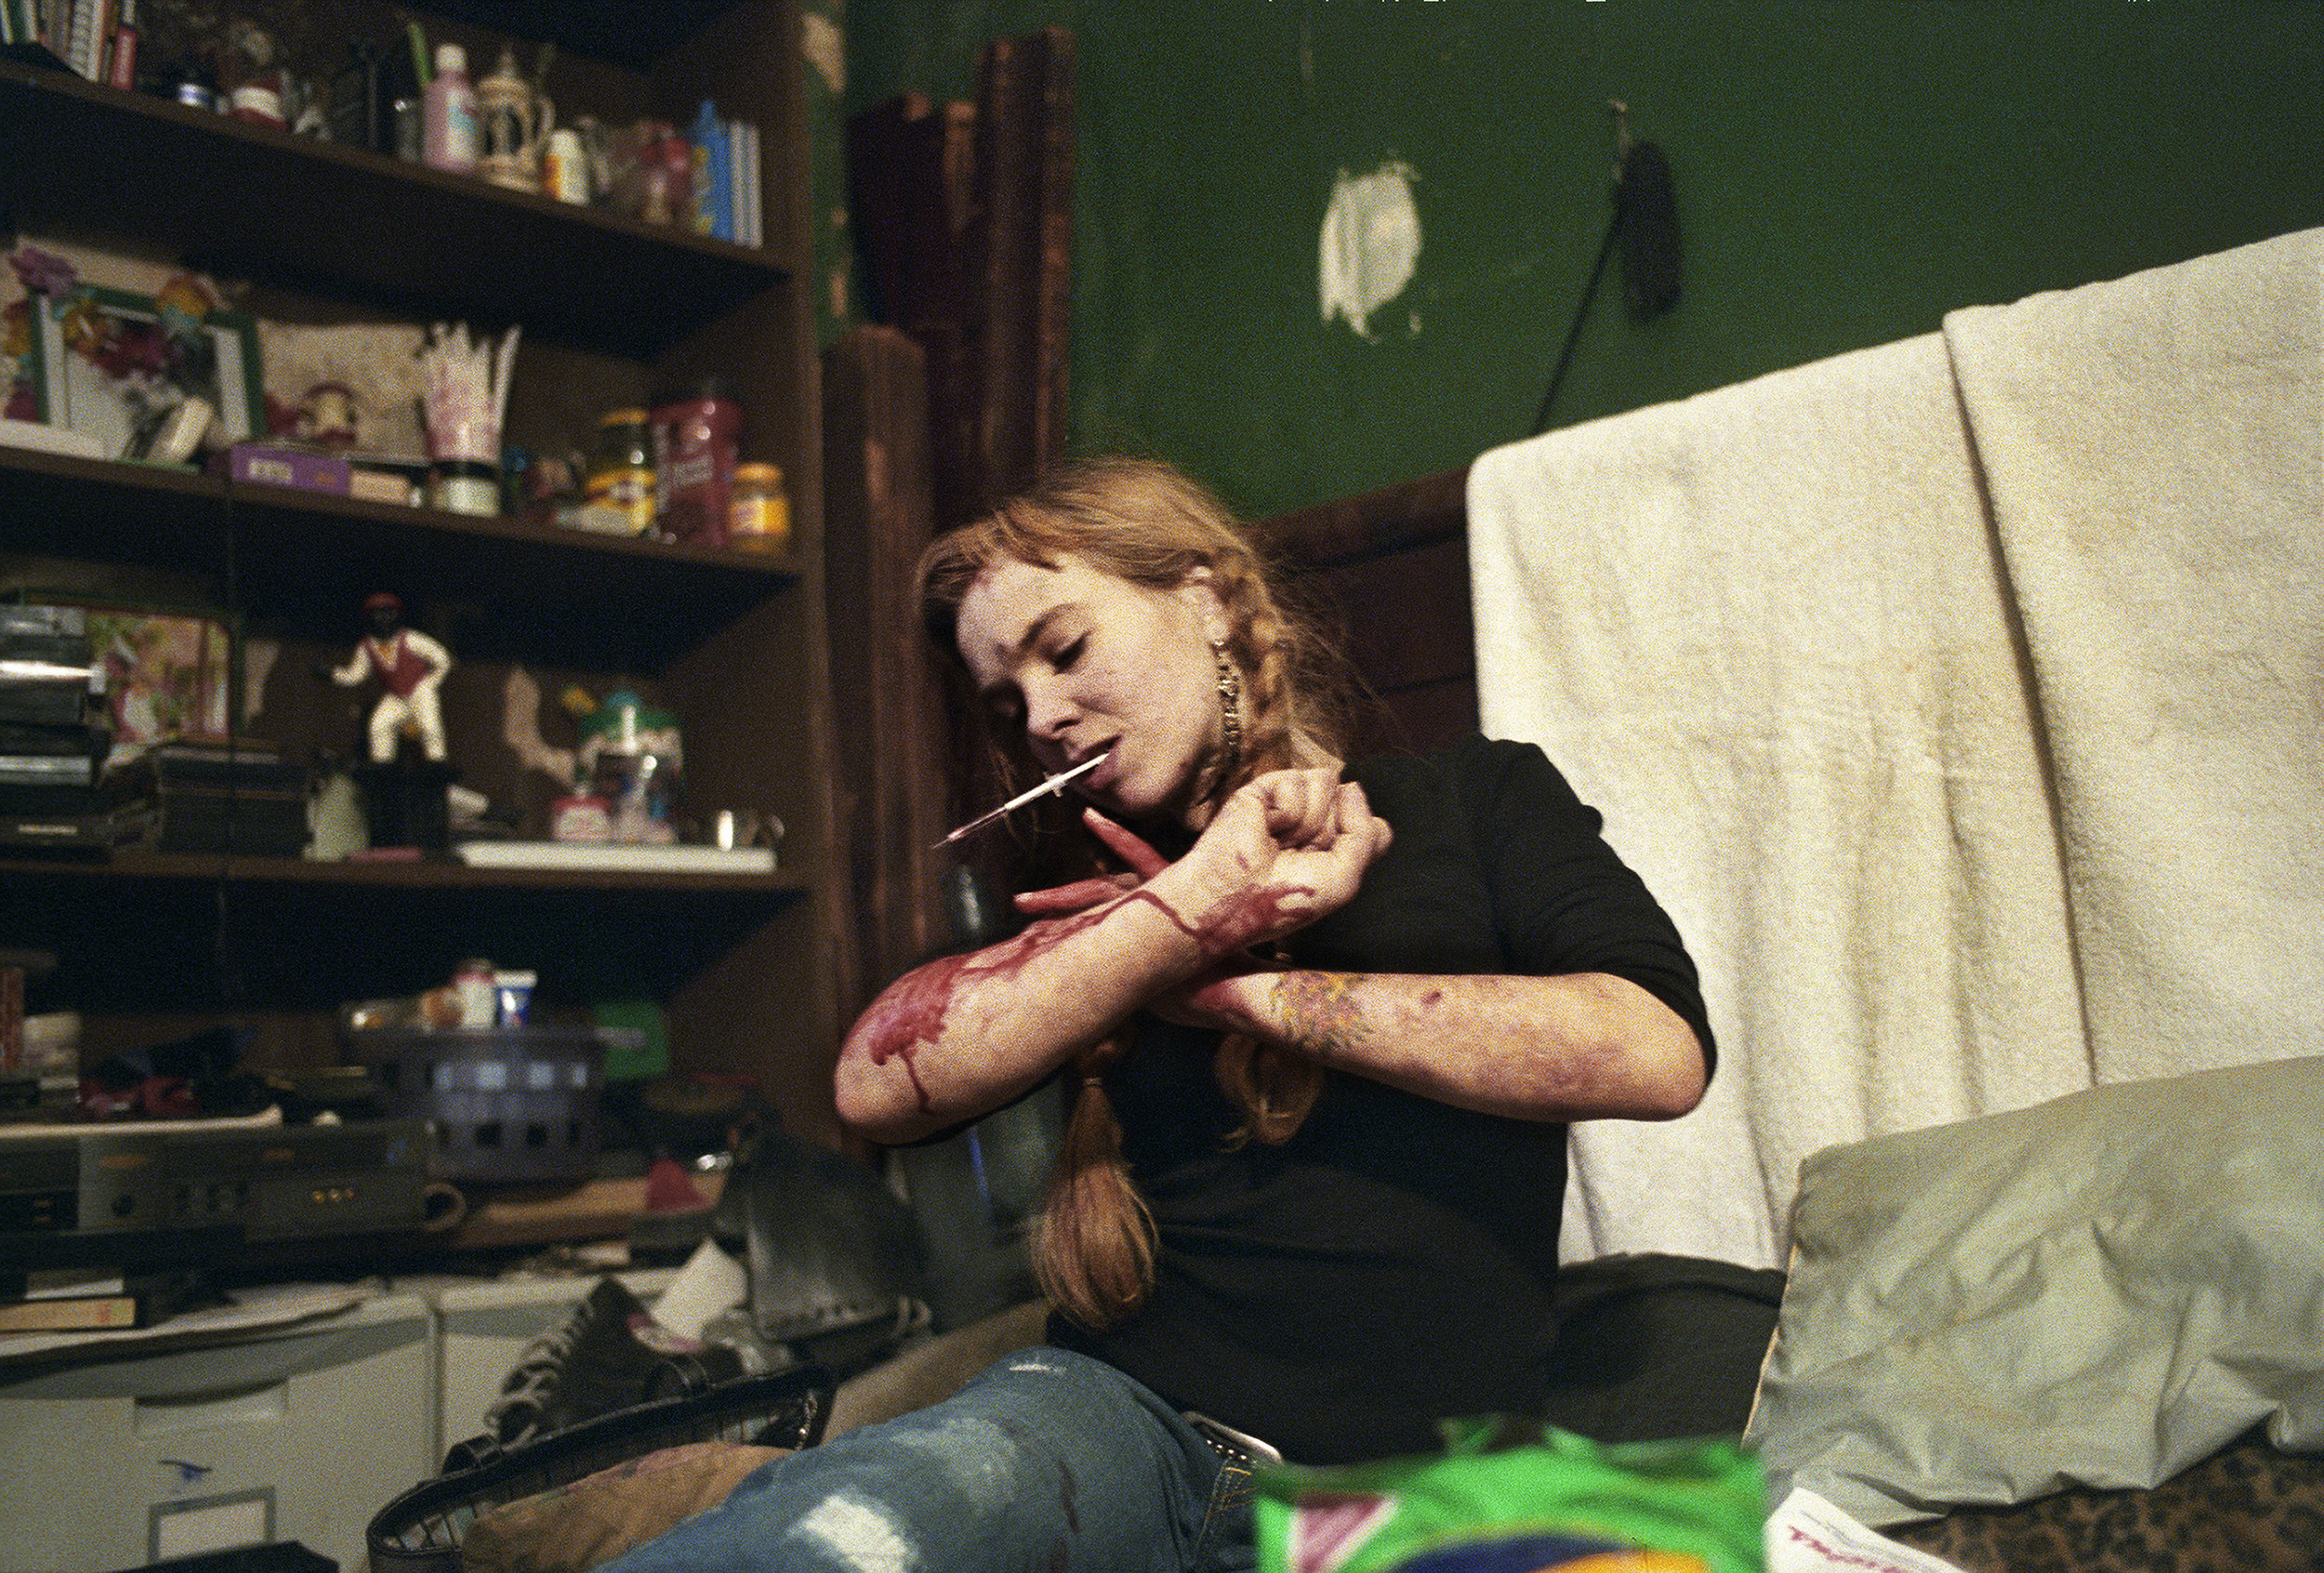 Natasha, who slept in the secret space behind a movable bookcase, bloodies her arms as she struggles for 45 minutes to find a vein in New York, N.Y. on March 14, 2005.